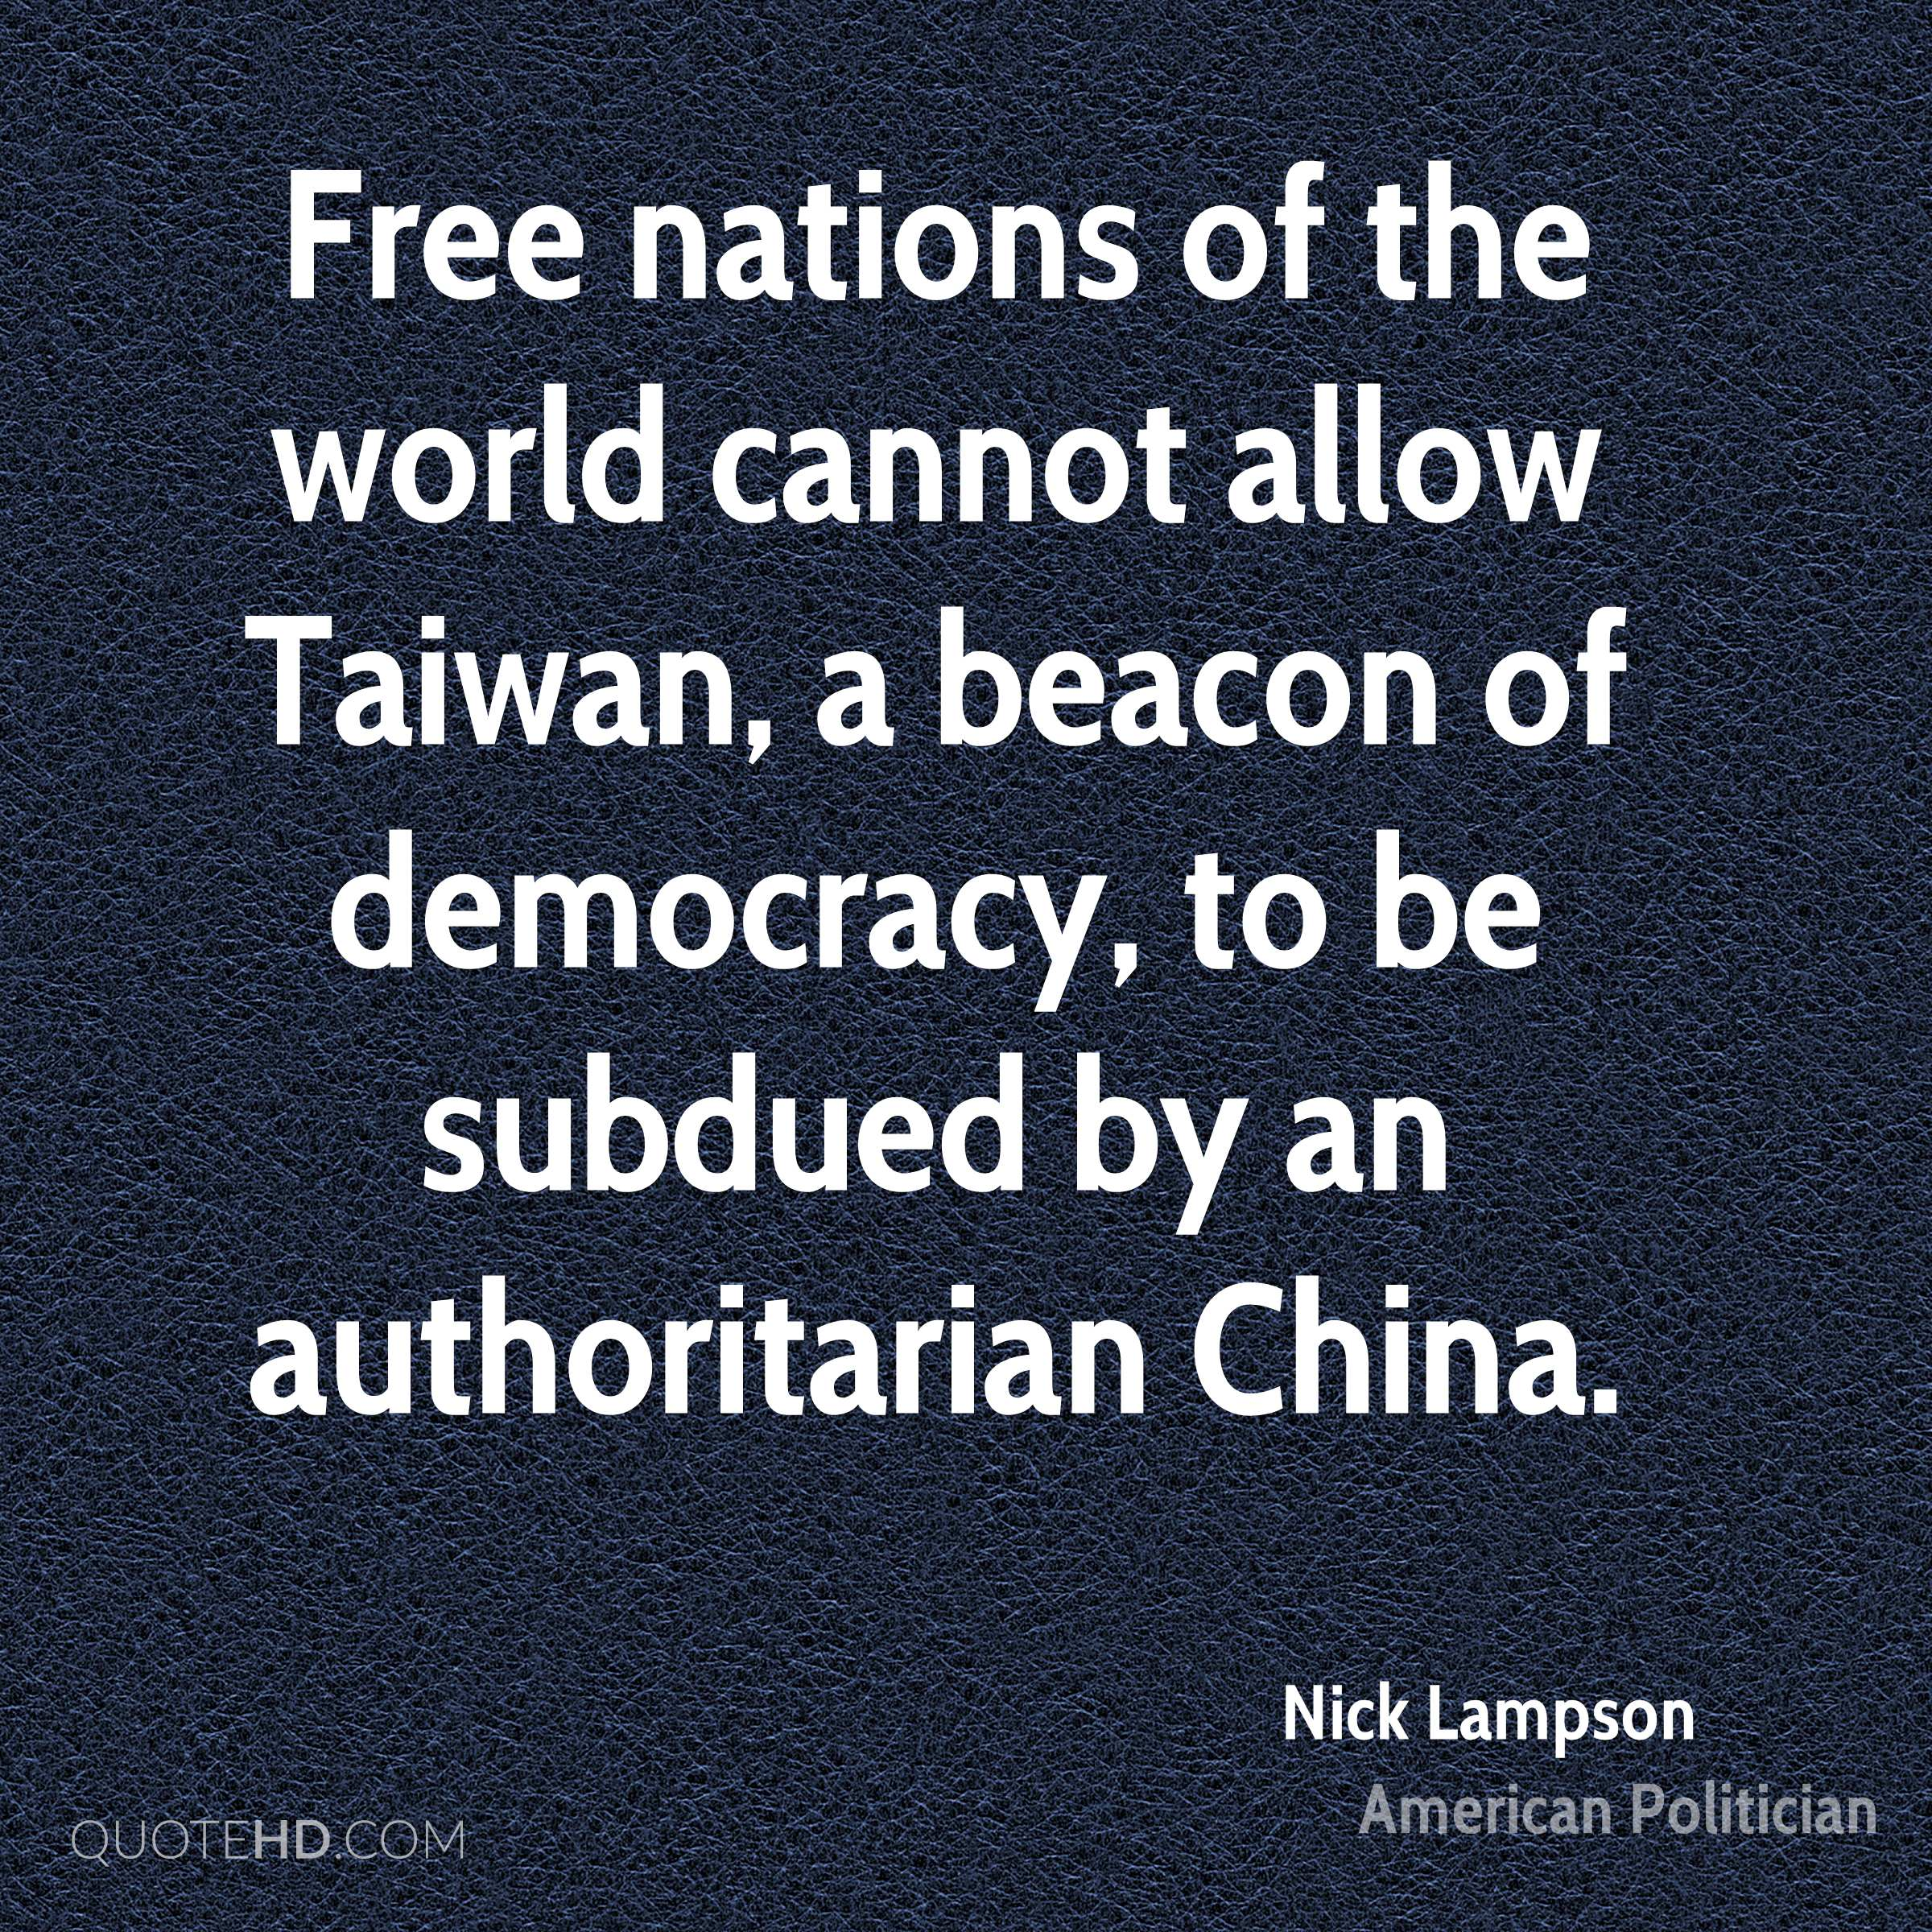 Free nations of the world cannot allow Taiwan, a beacon of democracy, to be subdued by an authoritarian China.